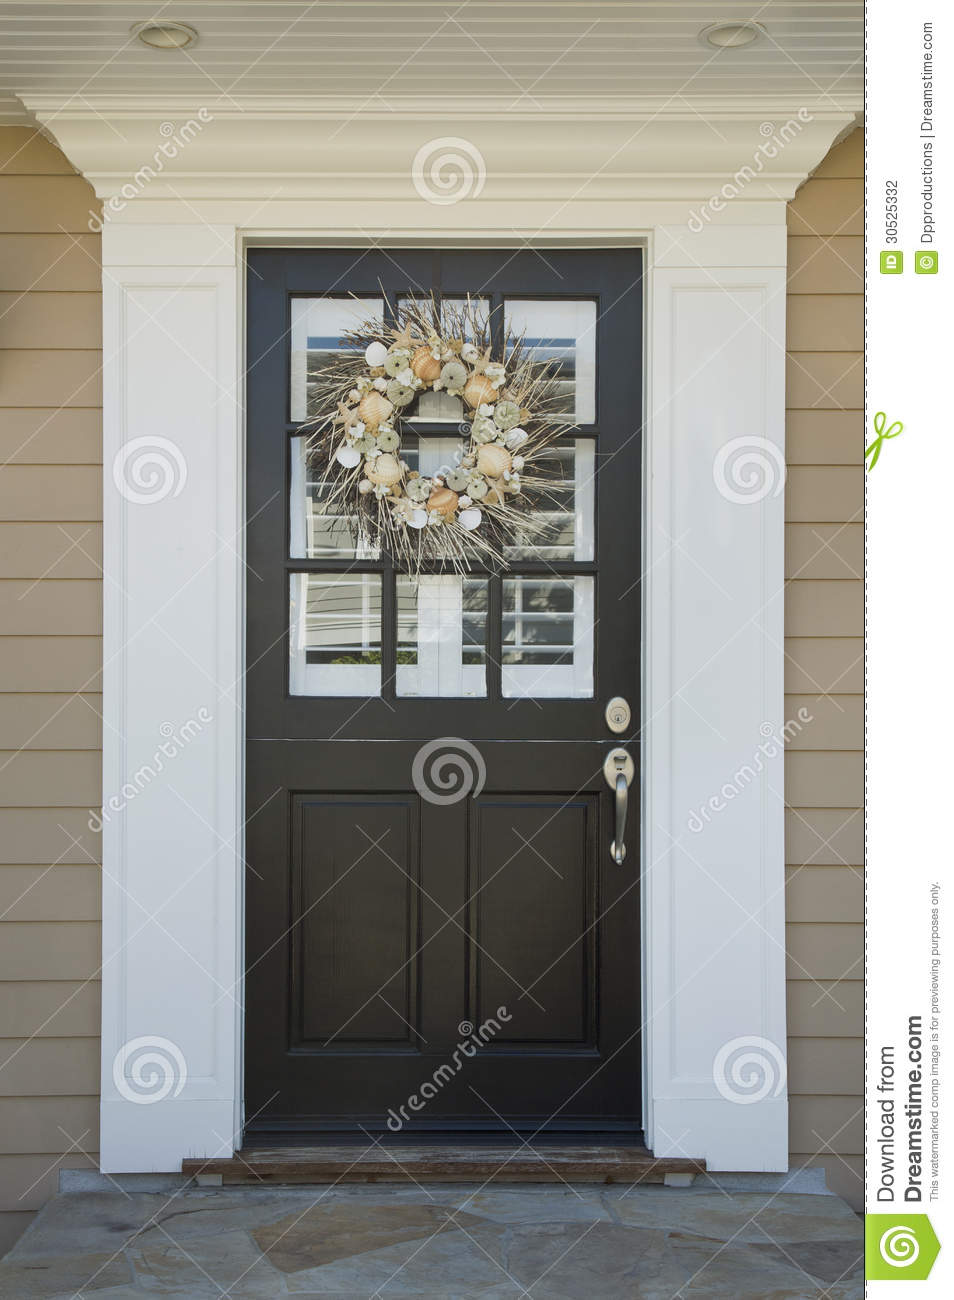 Front Door Of An Upscale Home Stock Photo Image Of